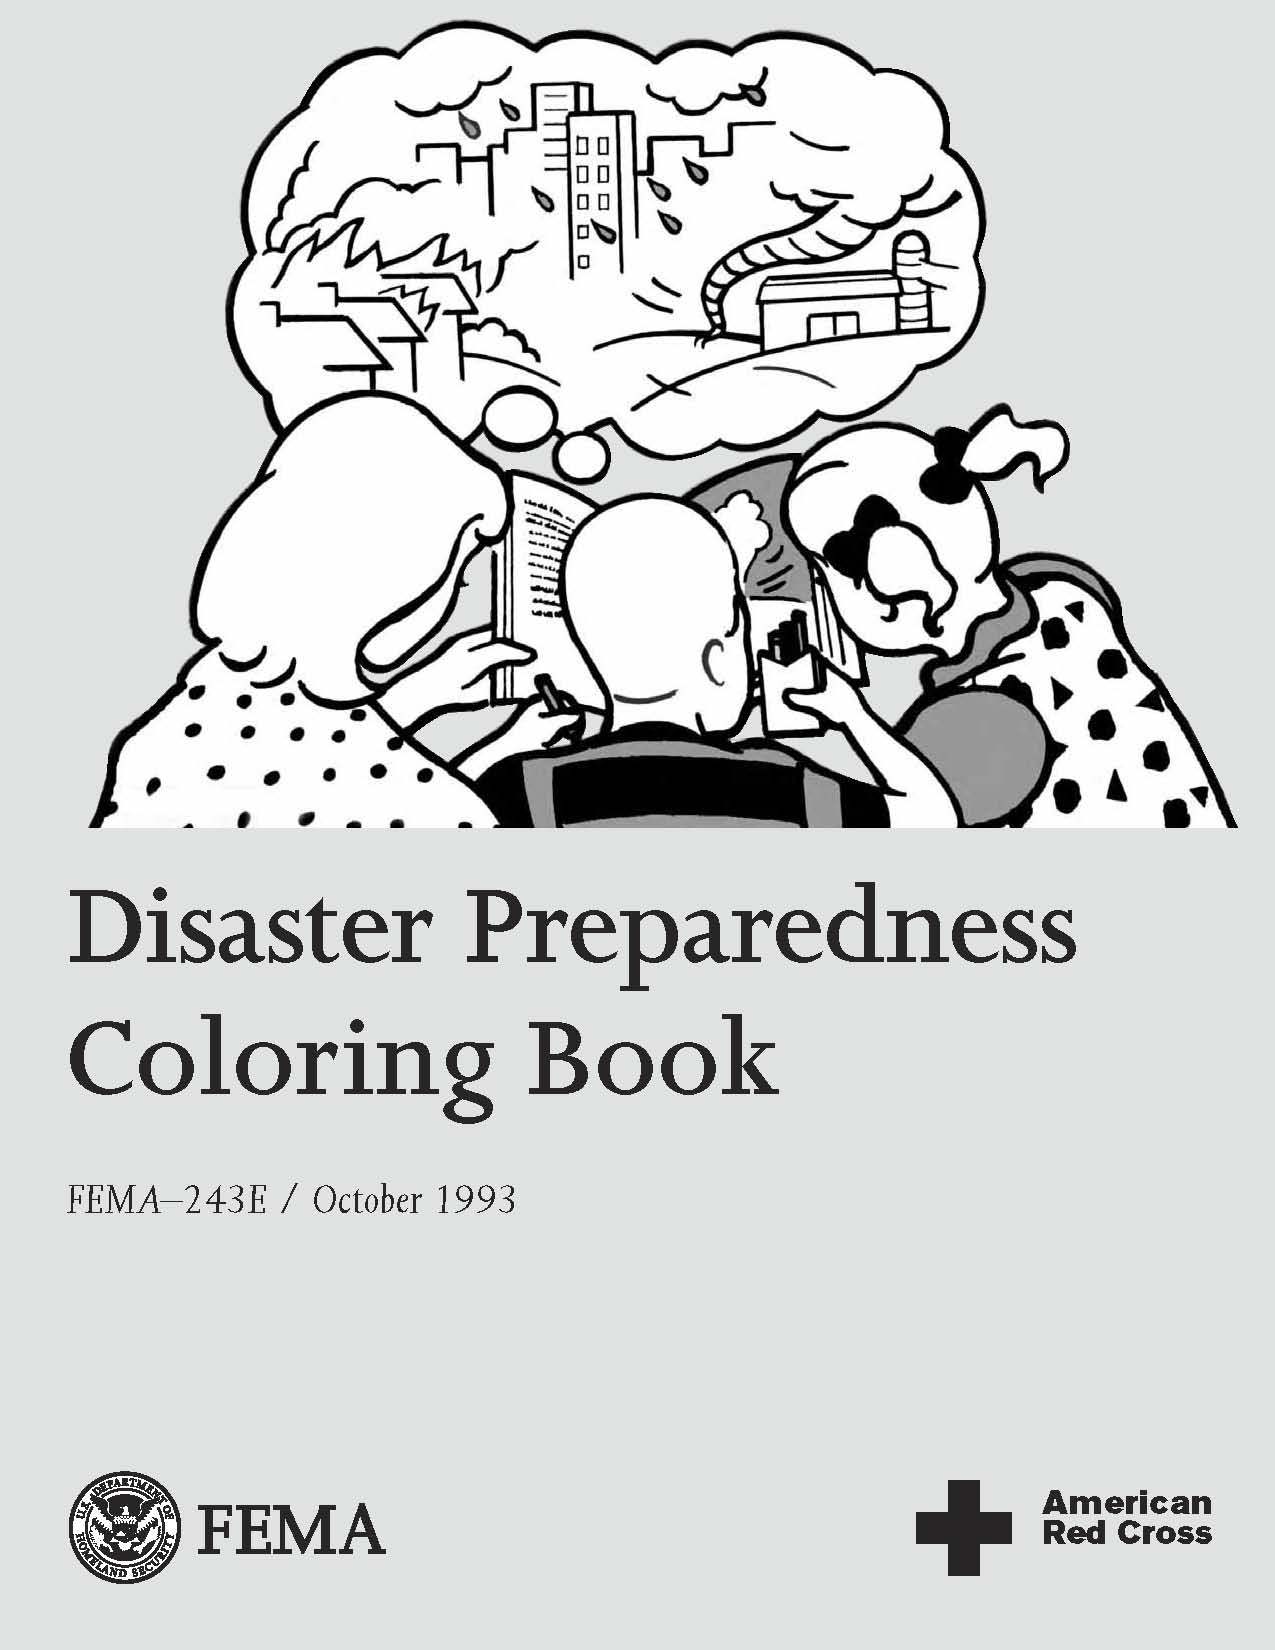 Disaster Preparedness Coloring Book FEMA 243E PDF 926 KB TXT 25 Available In Spanish 612 For Ages 3 10